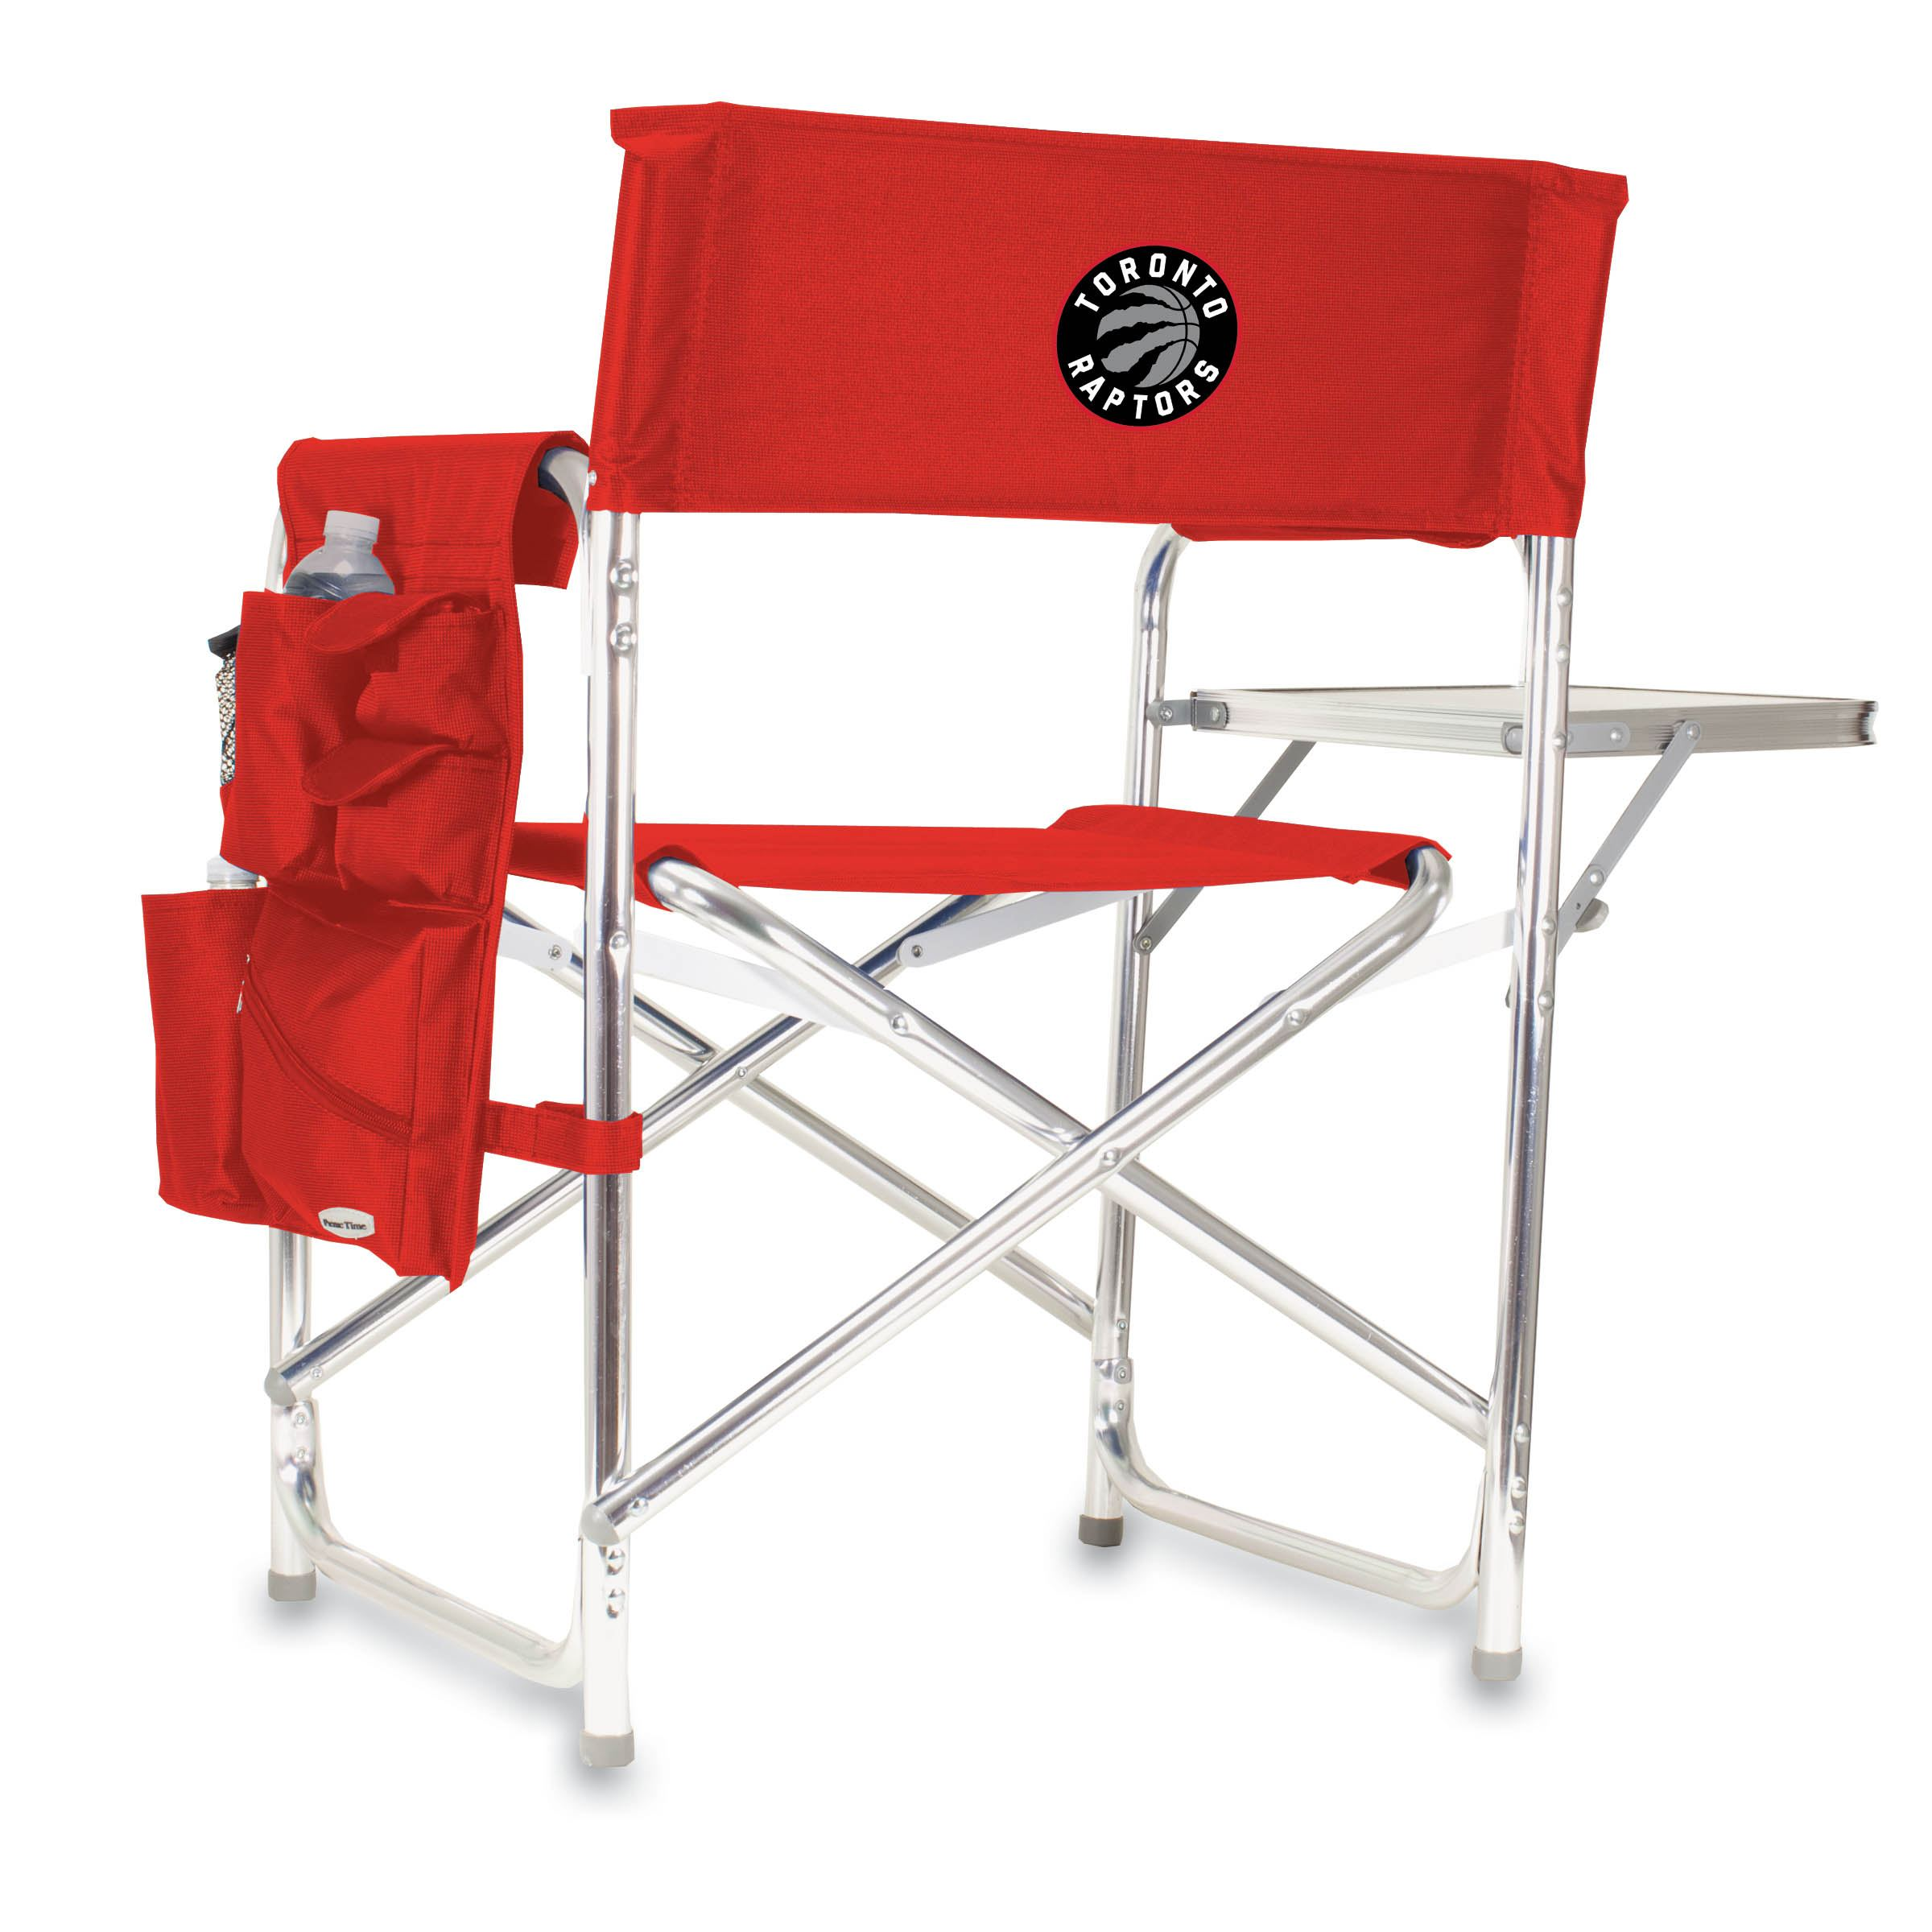 Picnic Time Nba Sports Chair Toronto Raptors